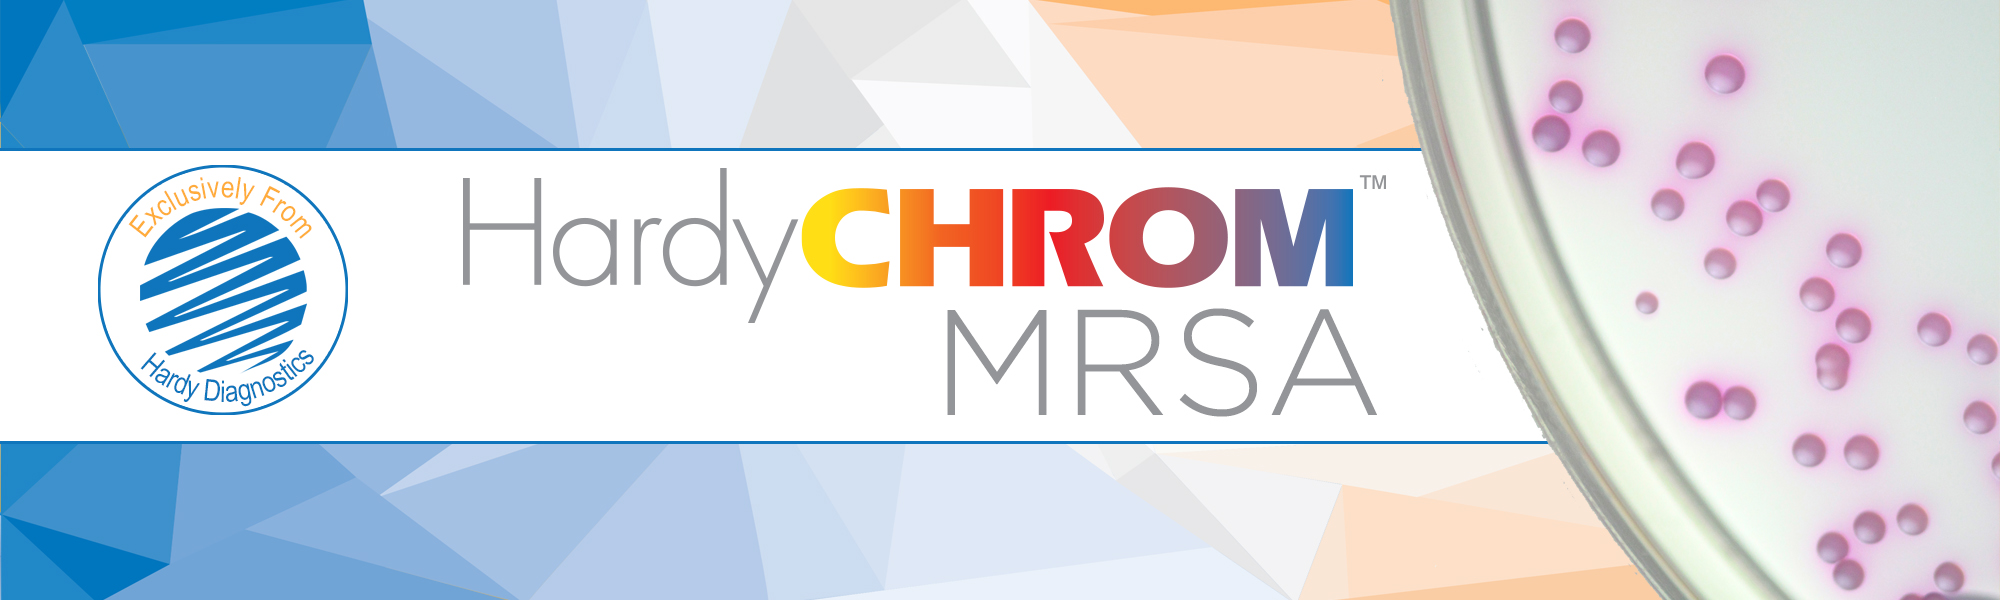 HardyChrom MRSA Chromogenic Culture Media Selective and Differential